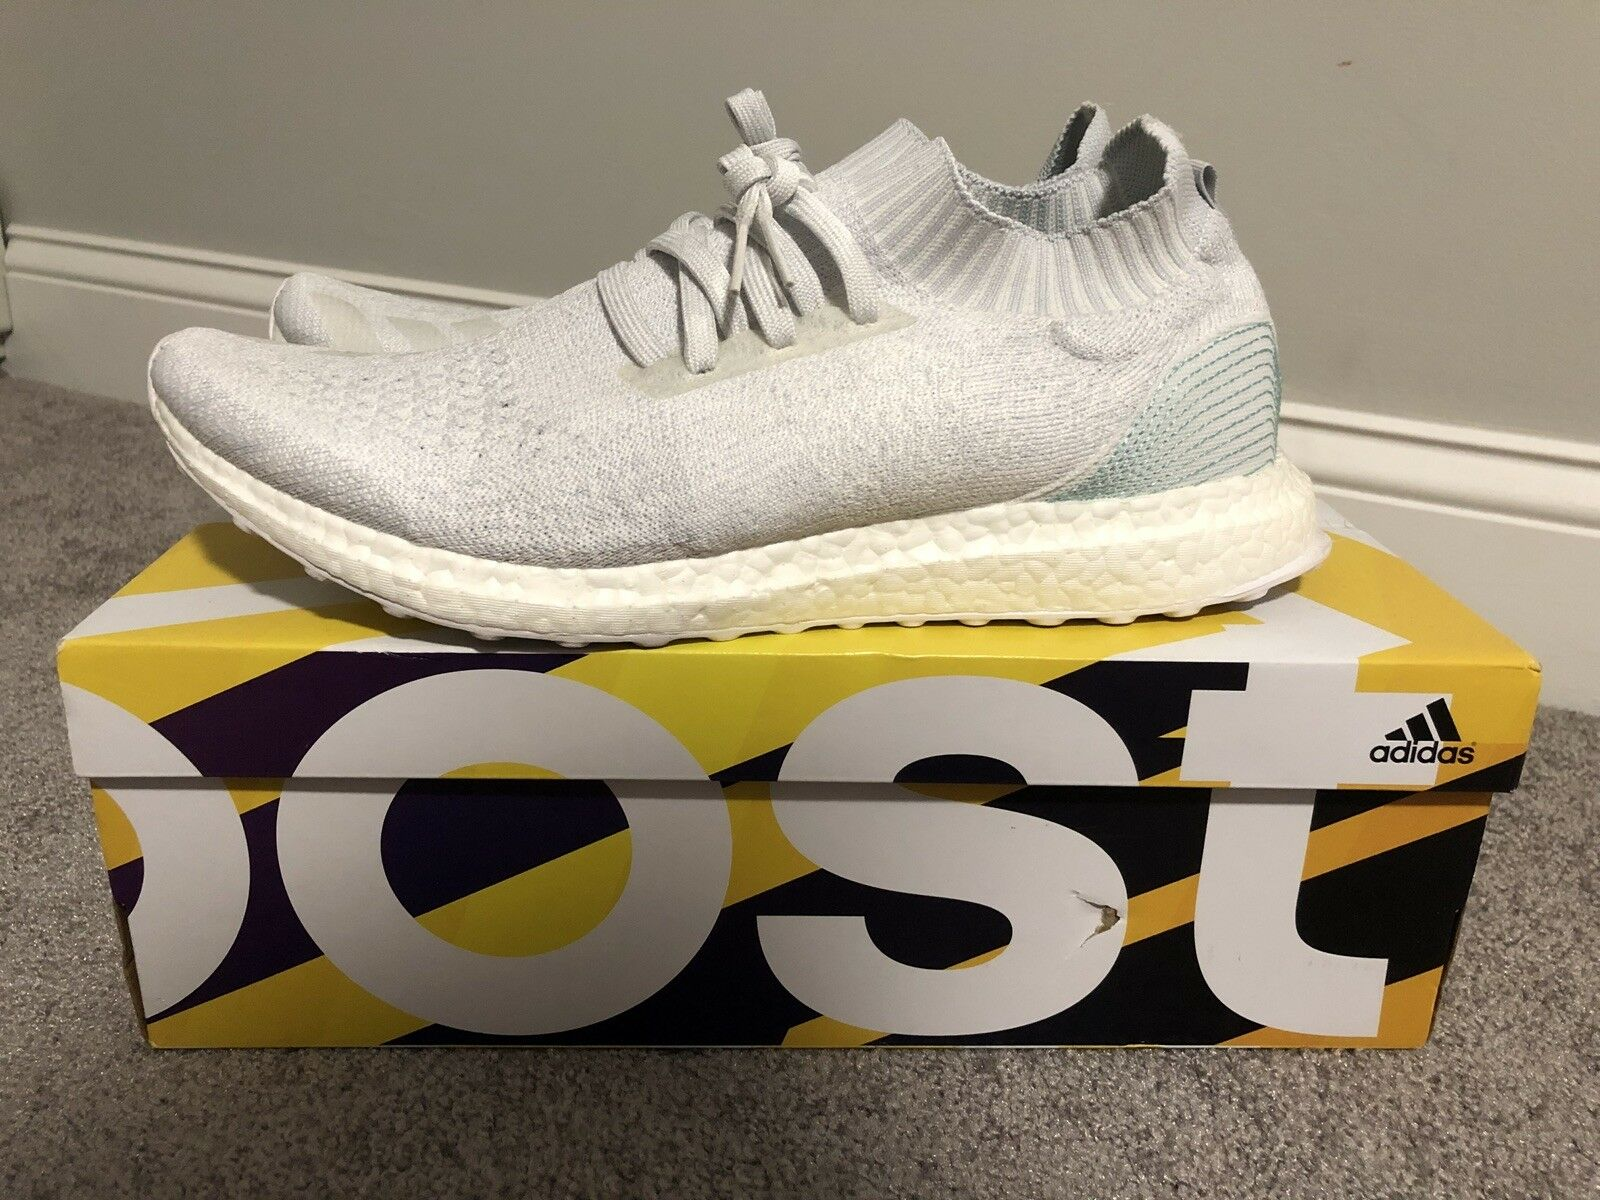 Adidas x Parley White Ultra Boost Uncaged LTD BB4073 PK Size 11.5 Ultraboost NMD PK BB4073 08e023